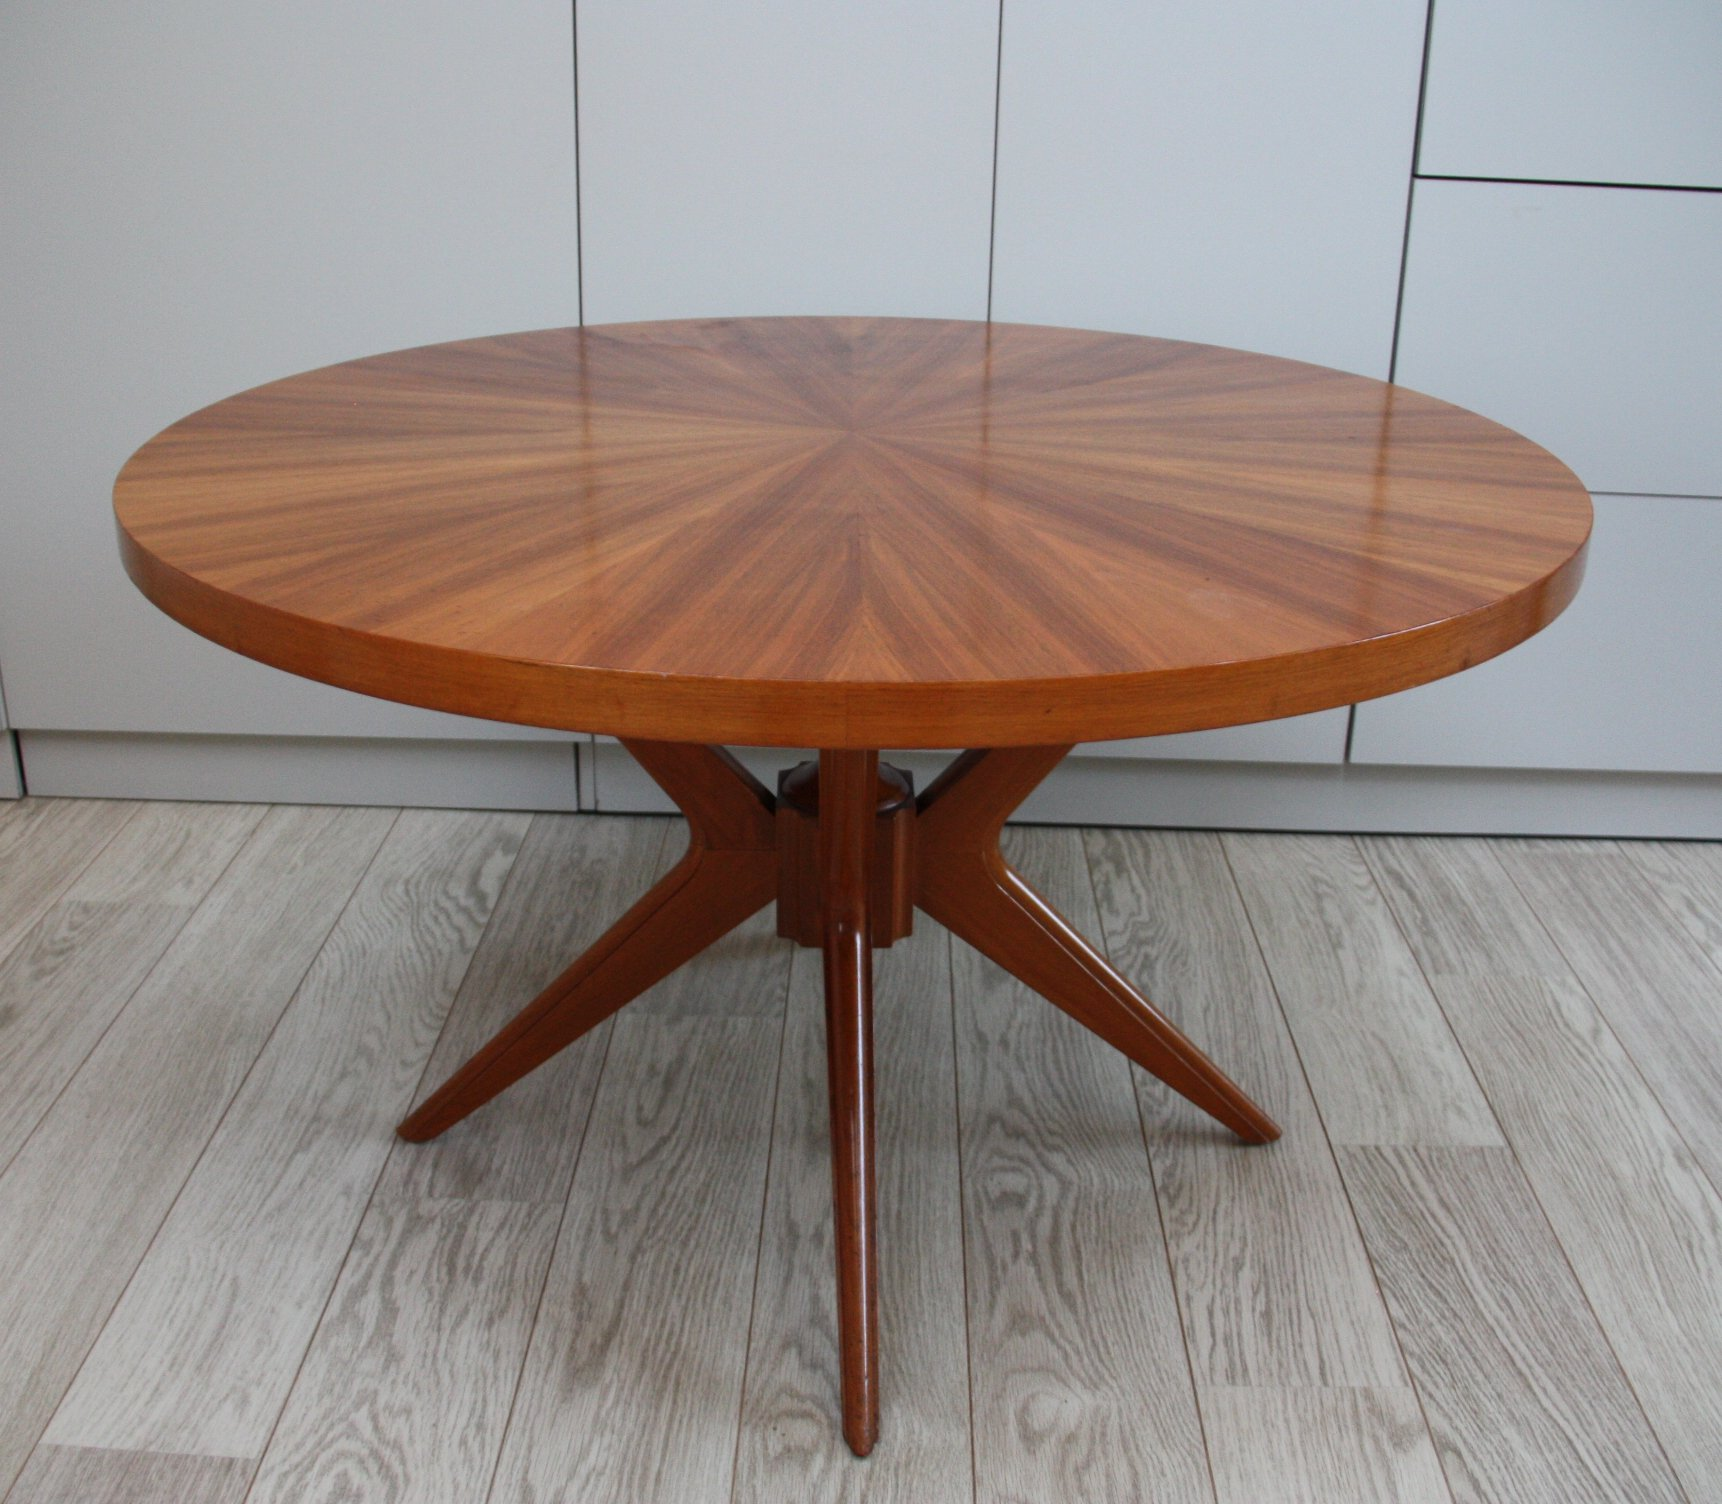 Circular Wooden Coffee Table By Jese Mobel Denmark 1960 S